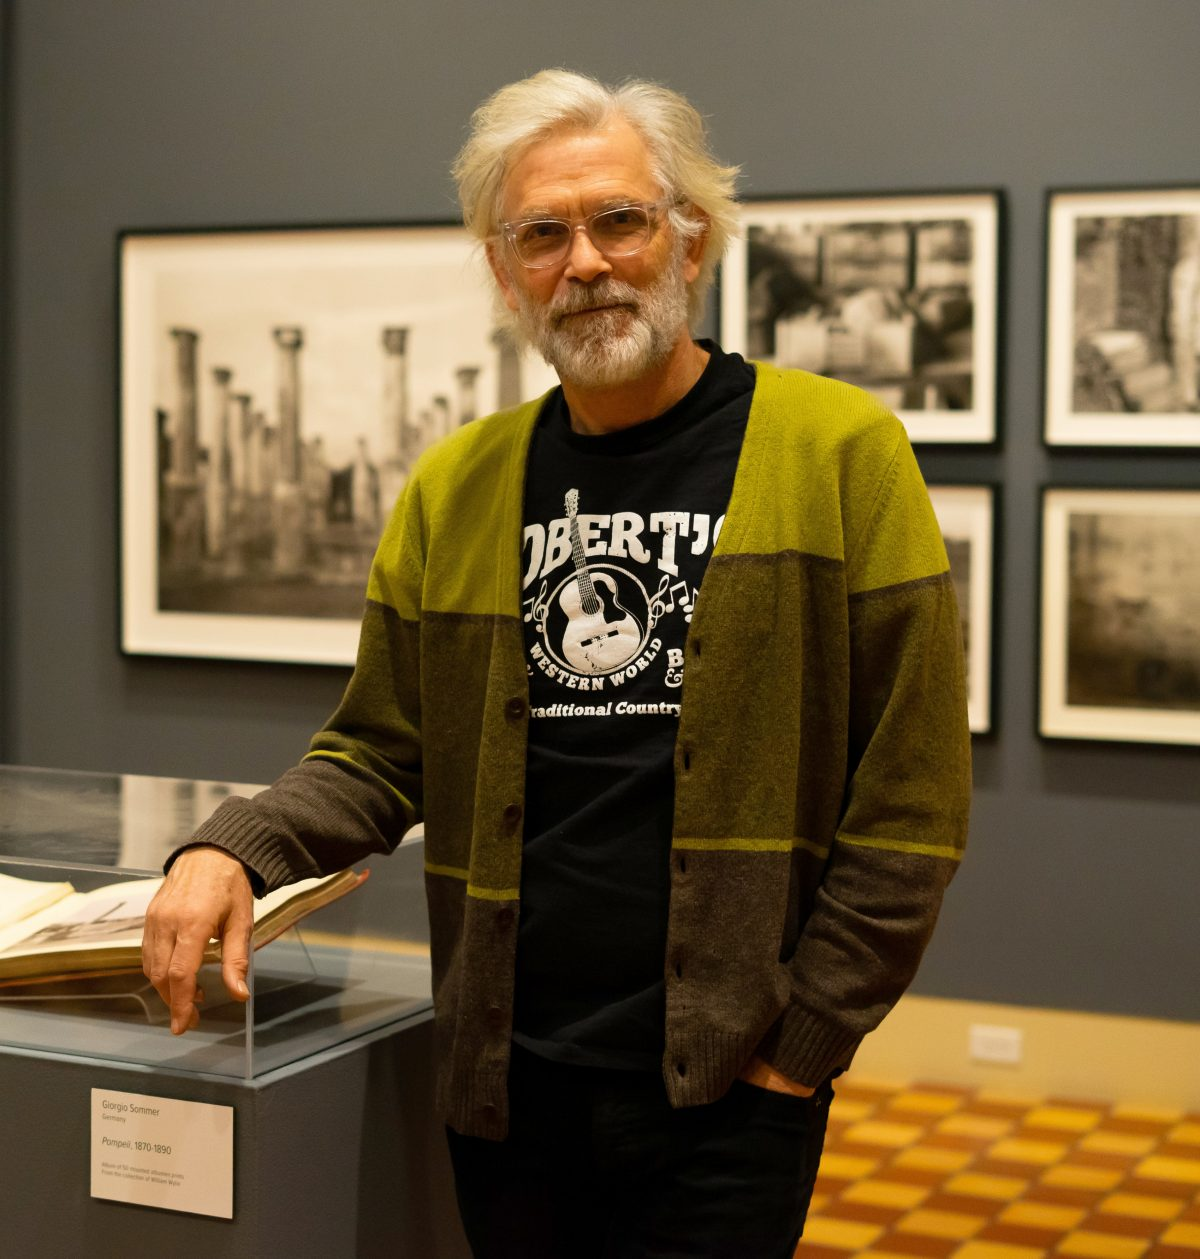 Man at photo exhibition